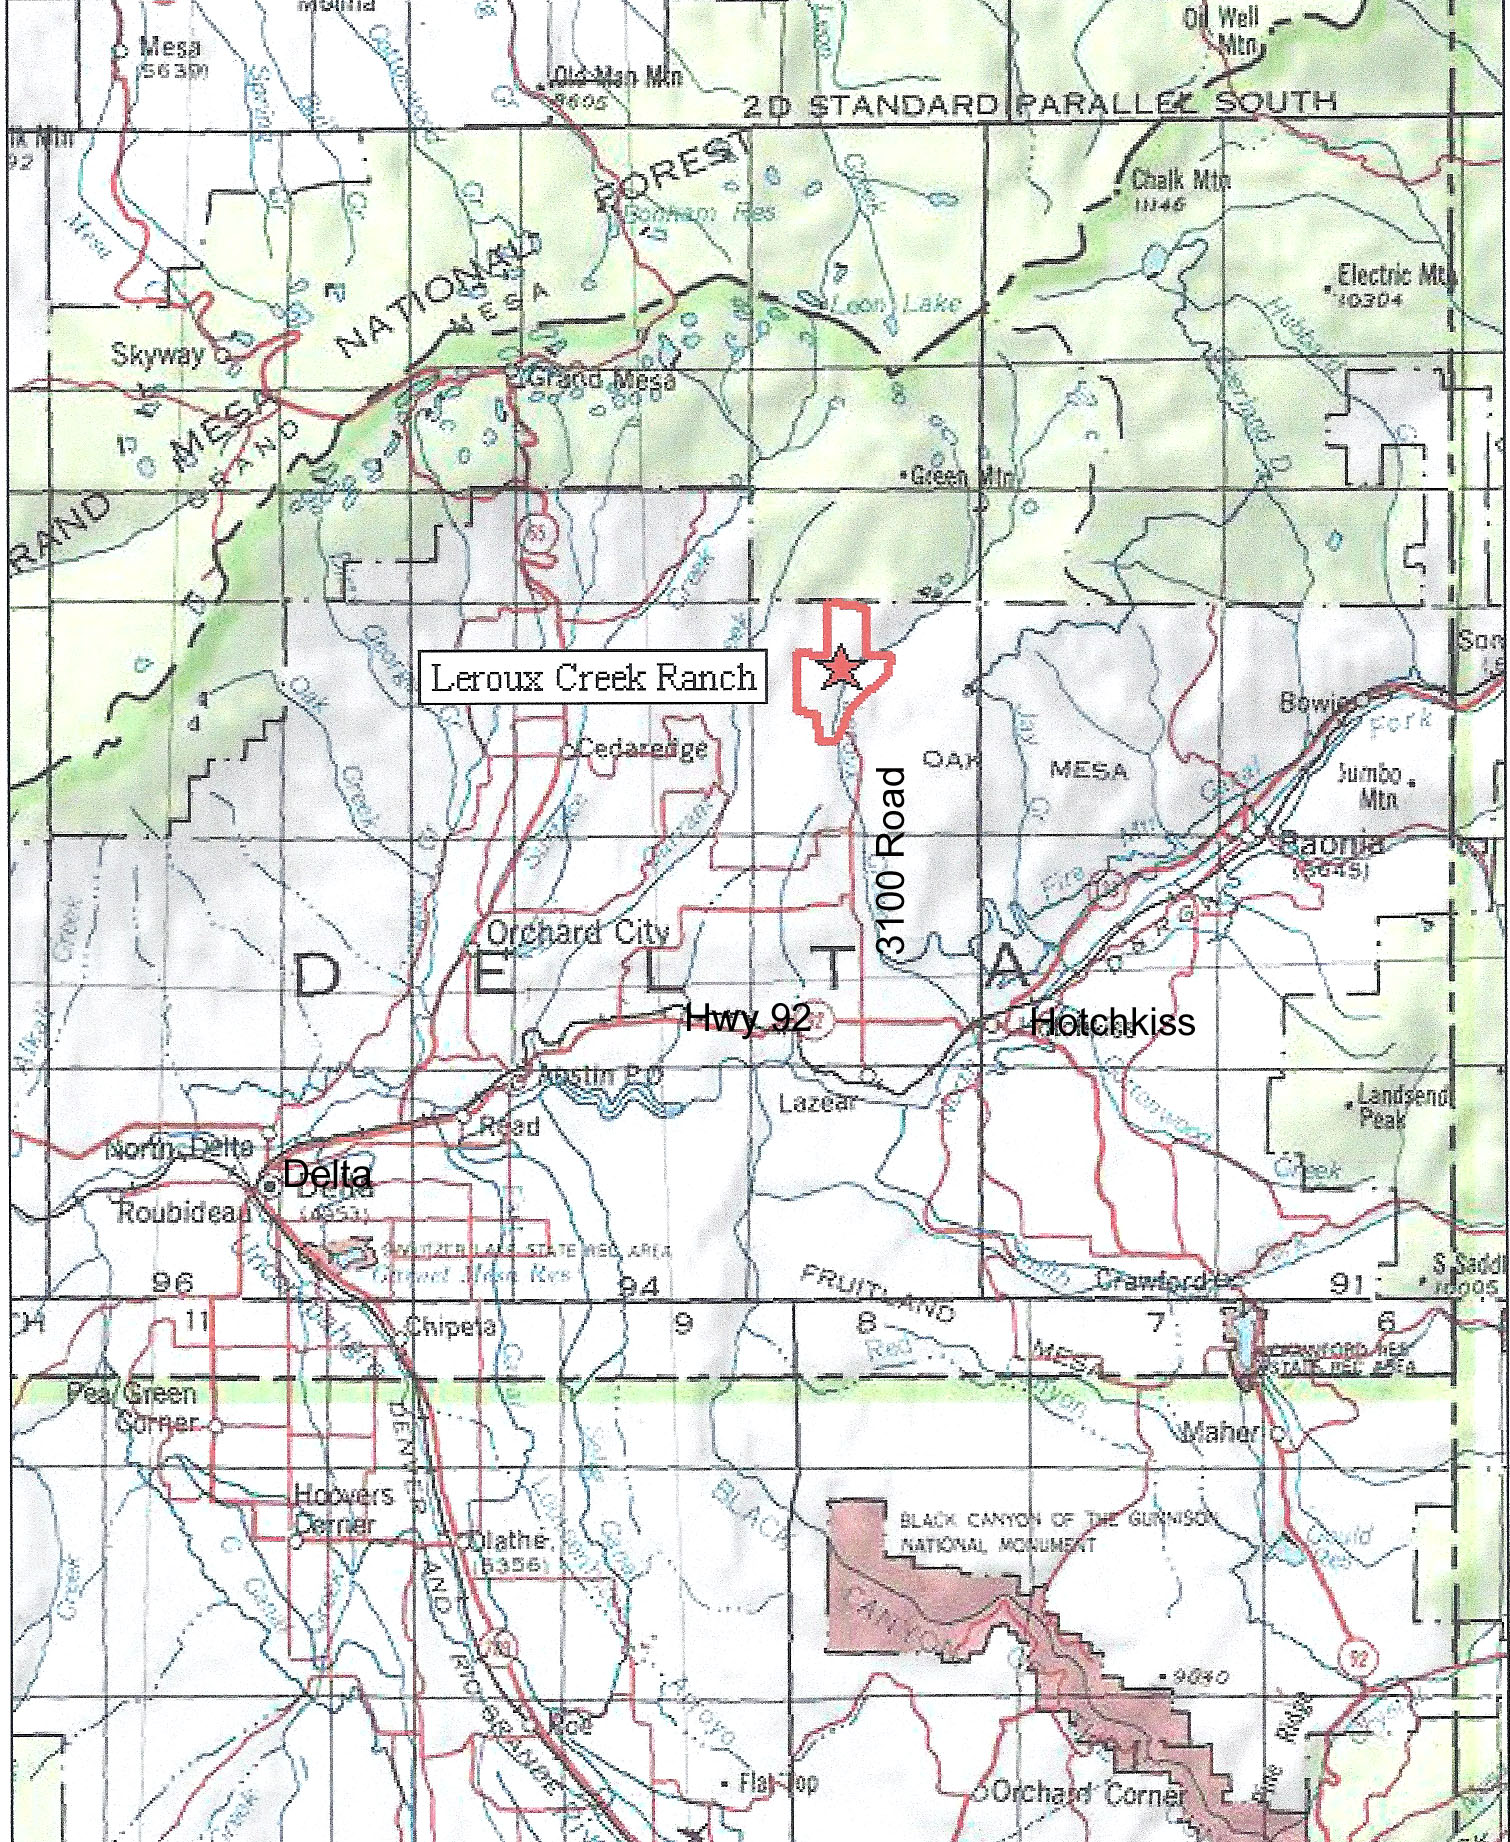 delta county History delta county was created by the colorado legislature on february 11, 1883, out of portions of central gunnison countythe county was named from a delta of arable land at the mouth of the uncompahgre river, where it flows into the gunnison river.